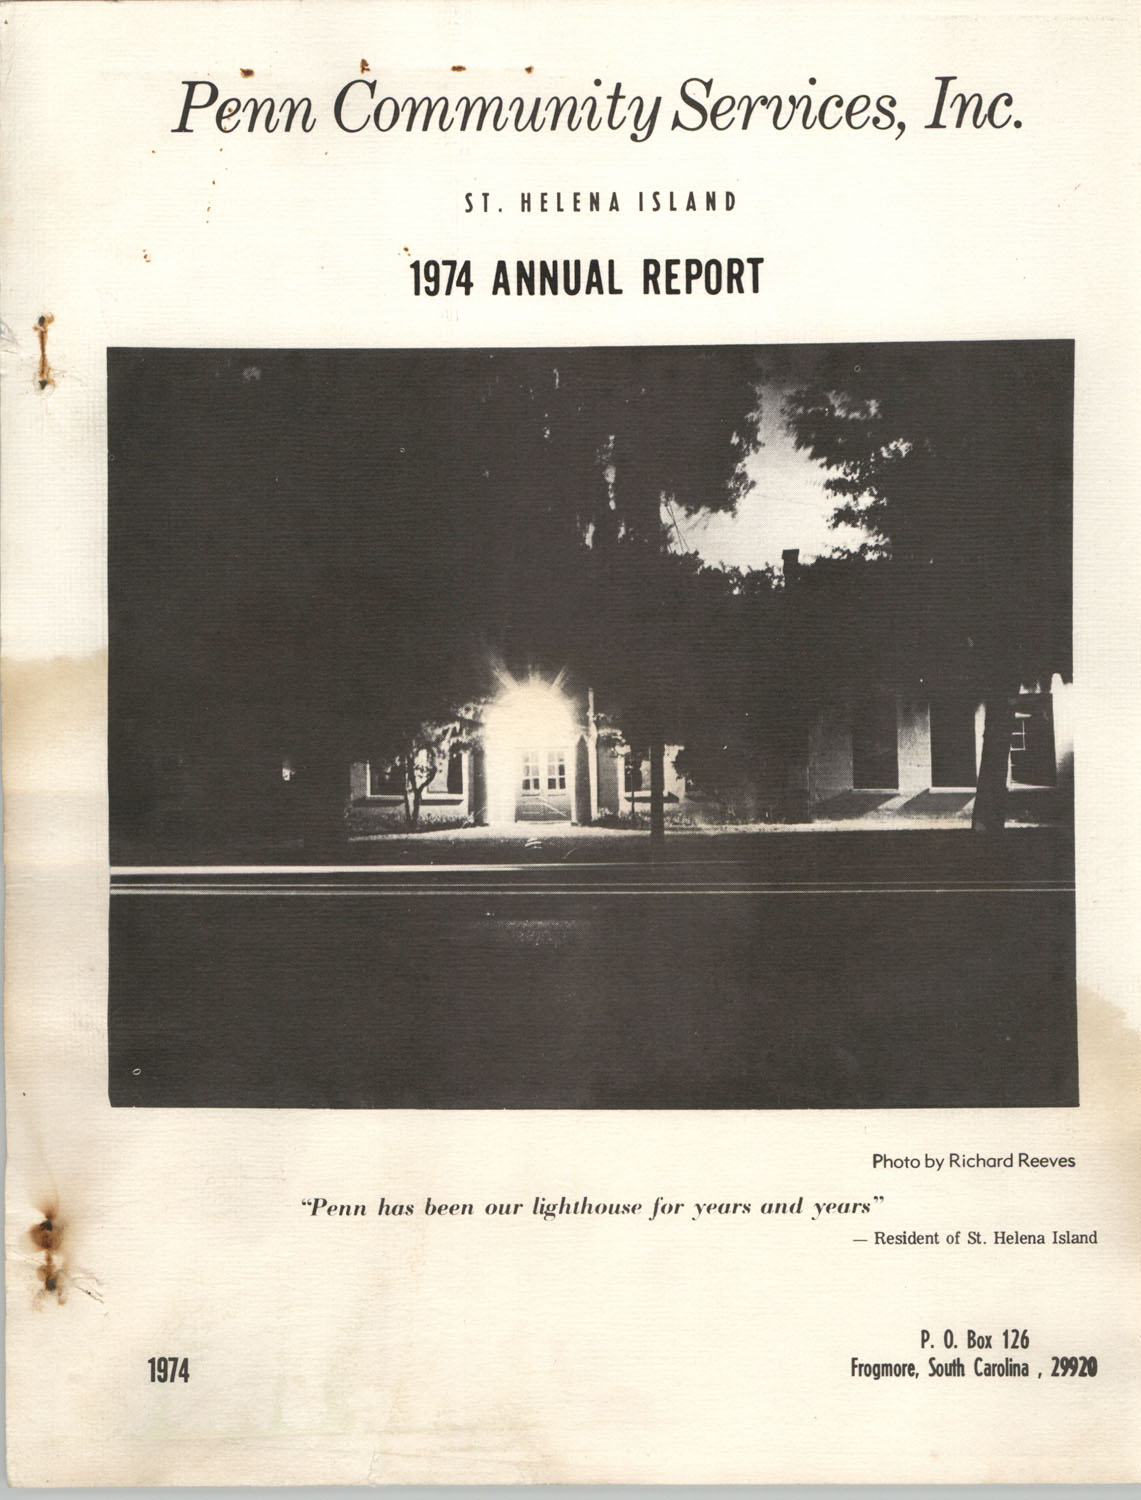 Annual Report, Penn Community Services, 1974, Cover